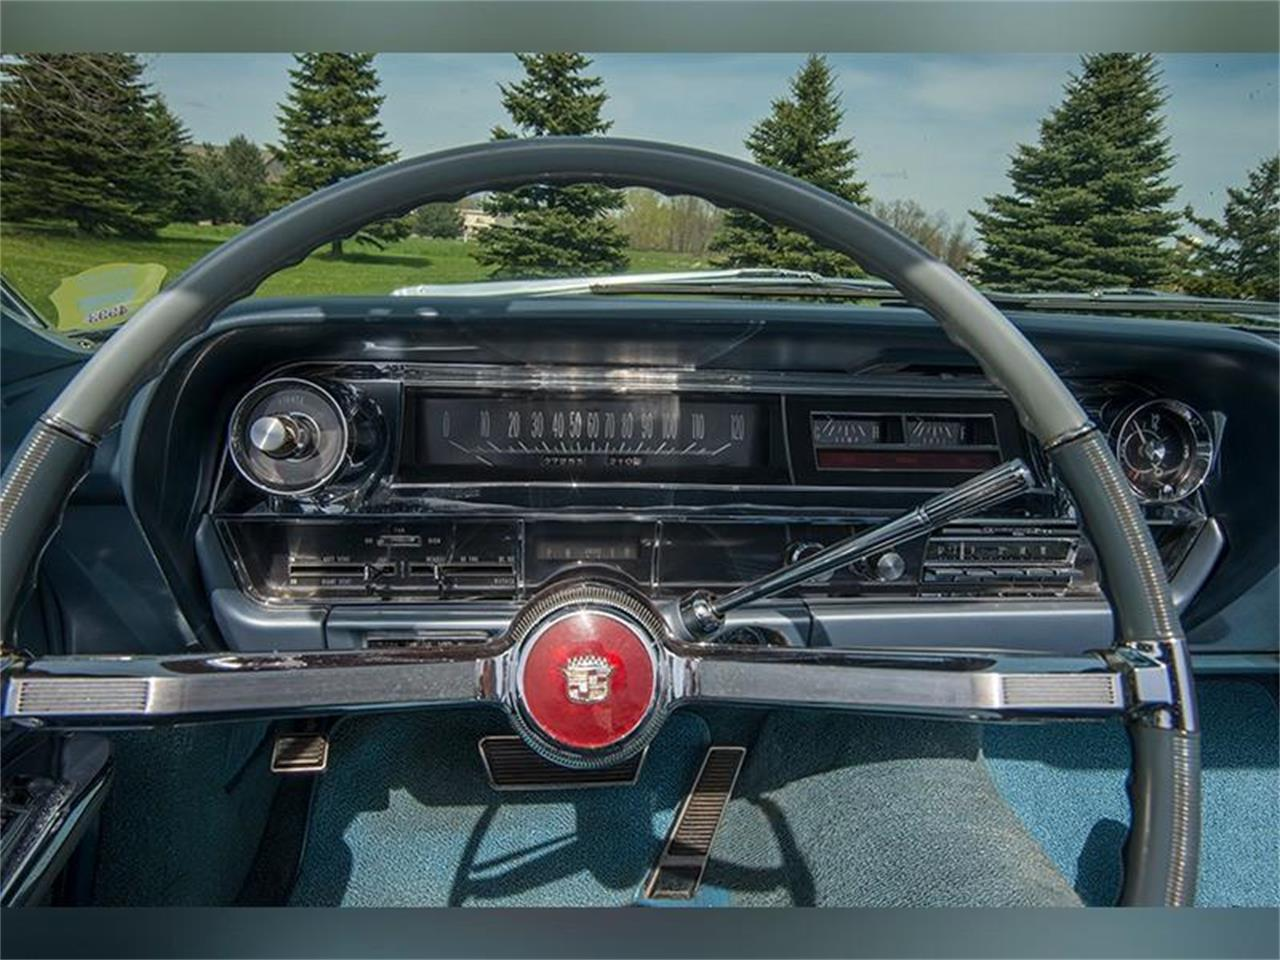 Large Picture of Classic '63 Cadillac DeVille located in Rogers Minnesota - $29,950.00 - L0V6